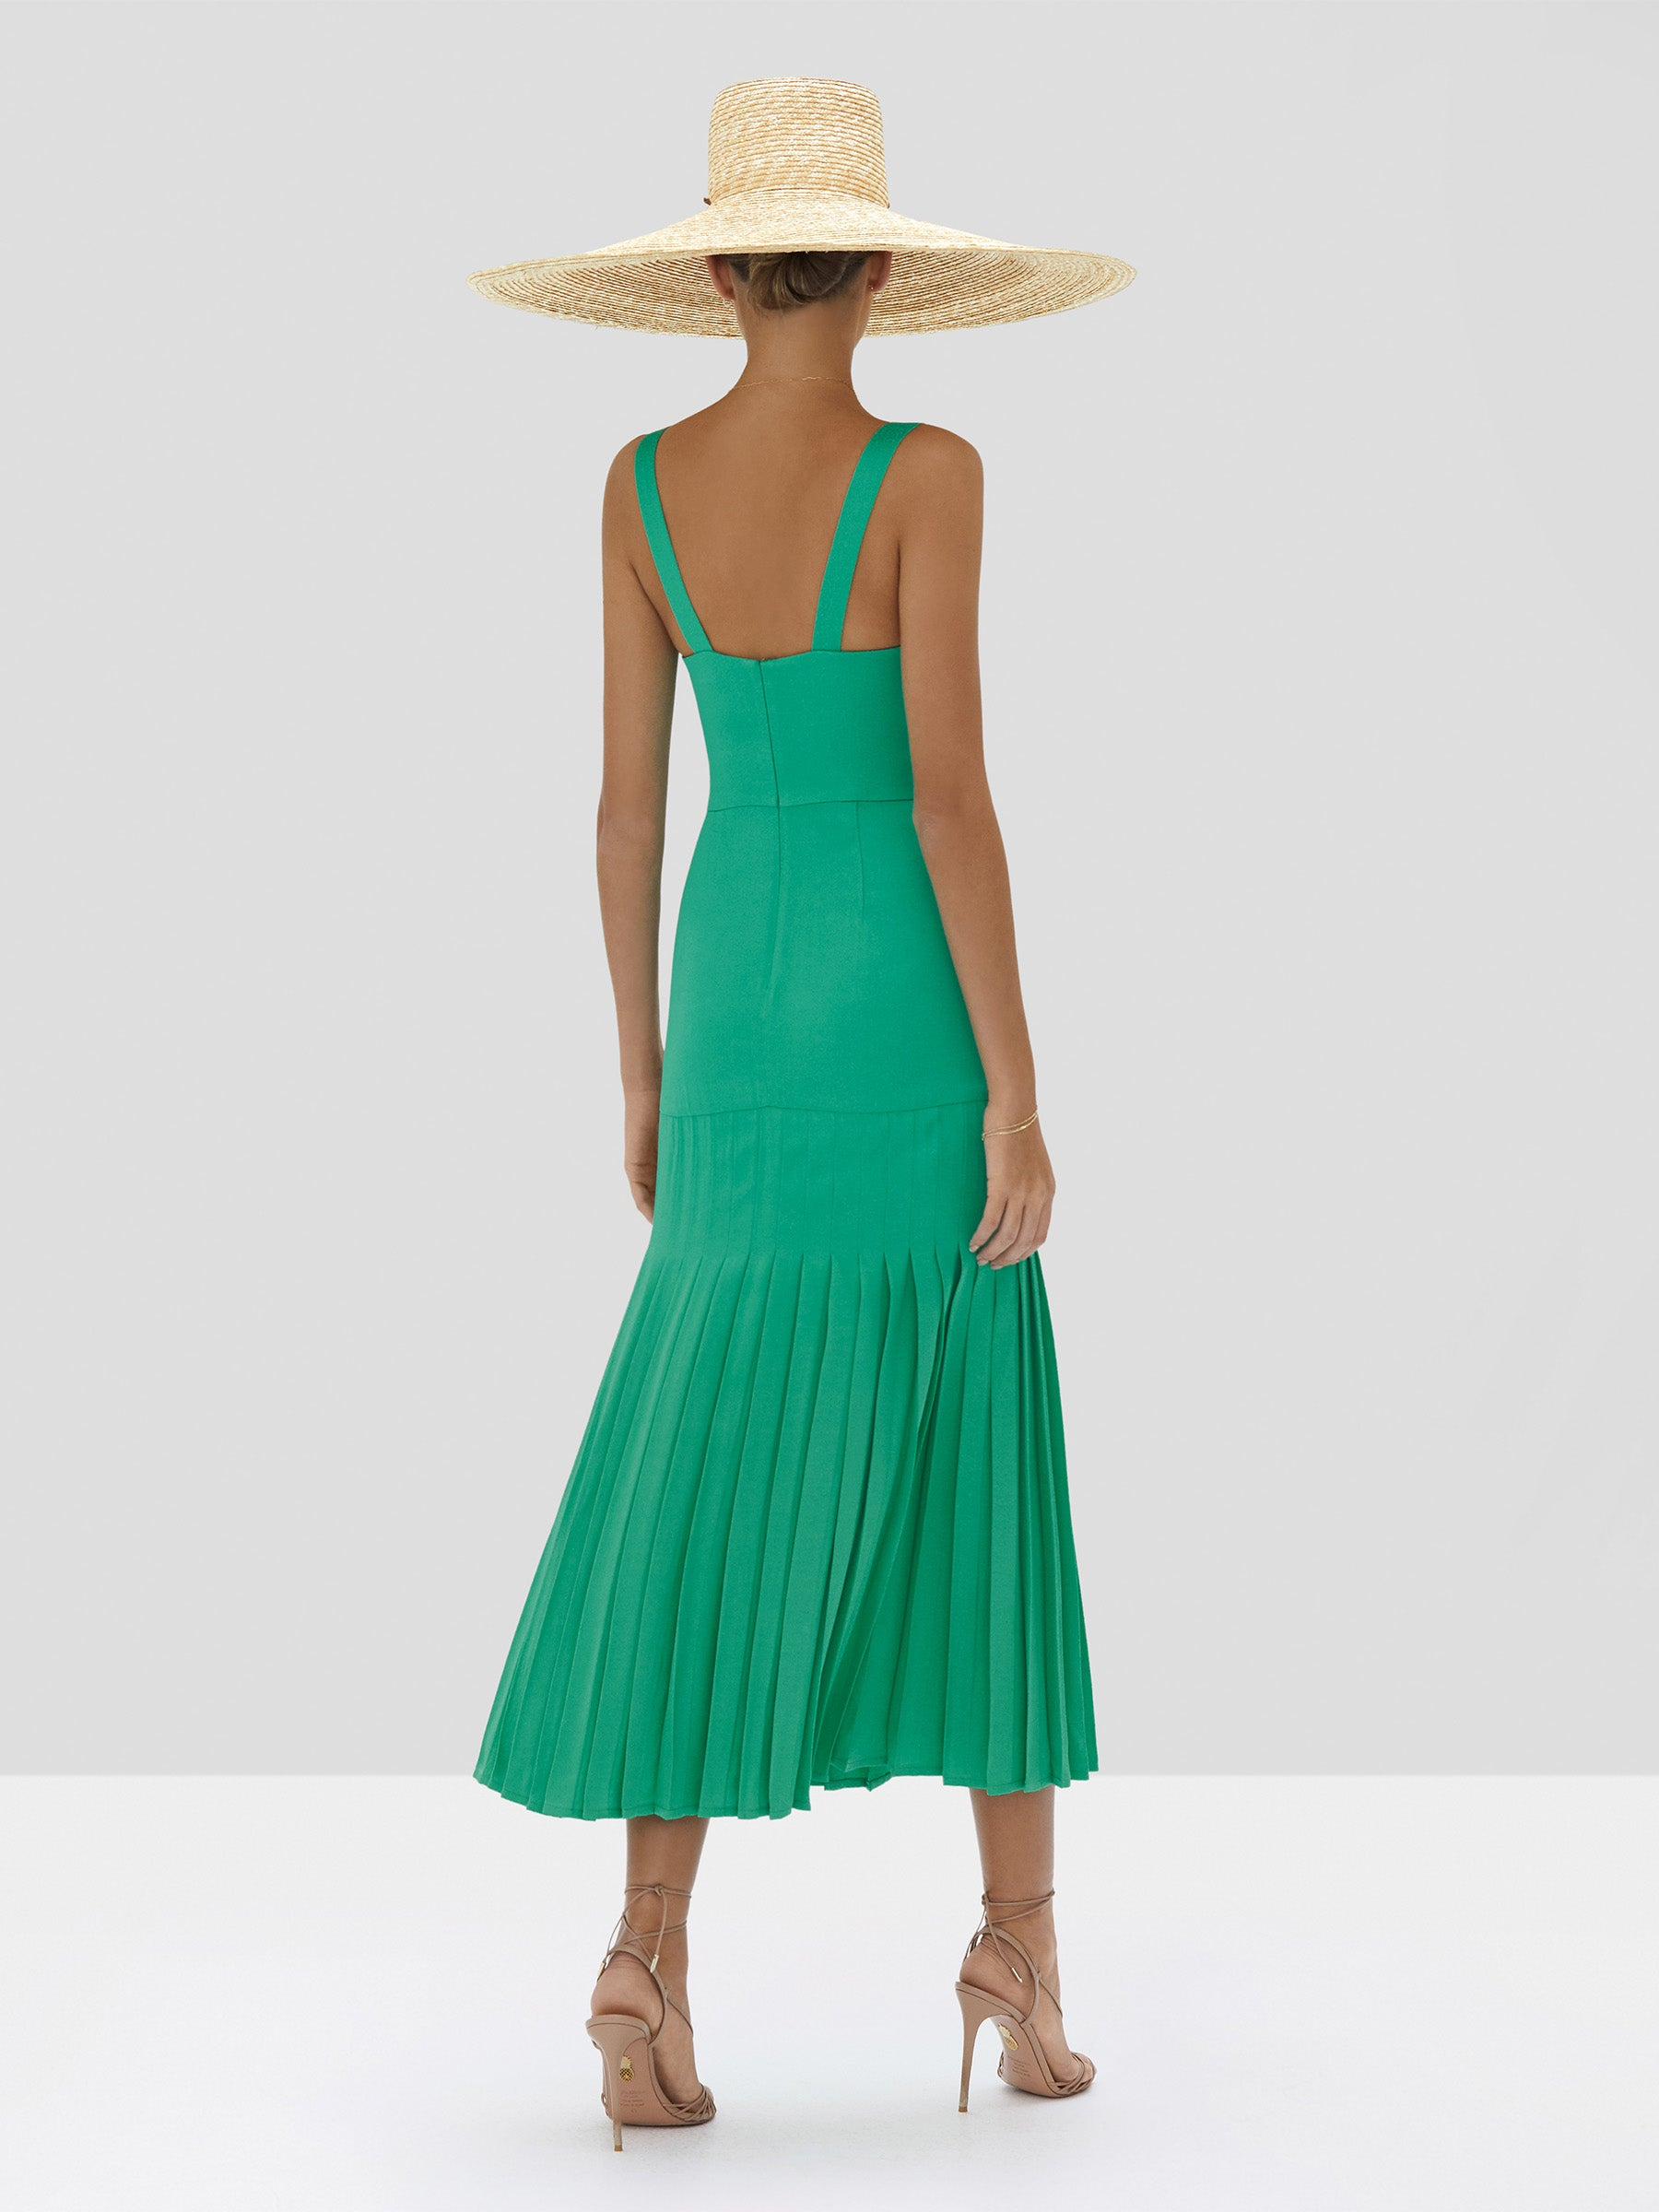 Alexis Oraina Dress in Emerald Green from Spring Summer 2020 Collection - Rear View